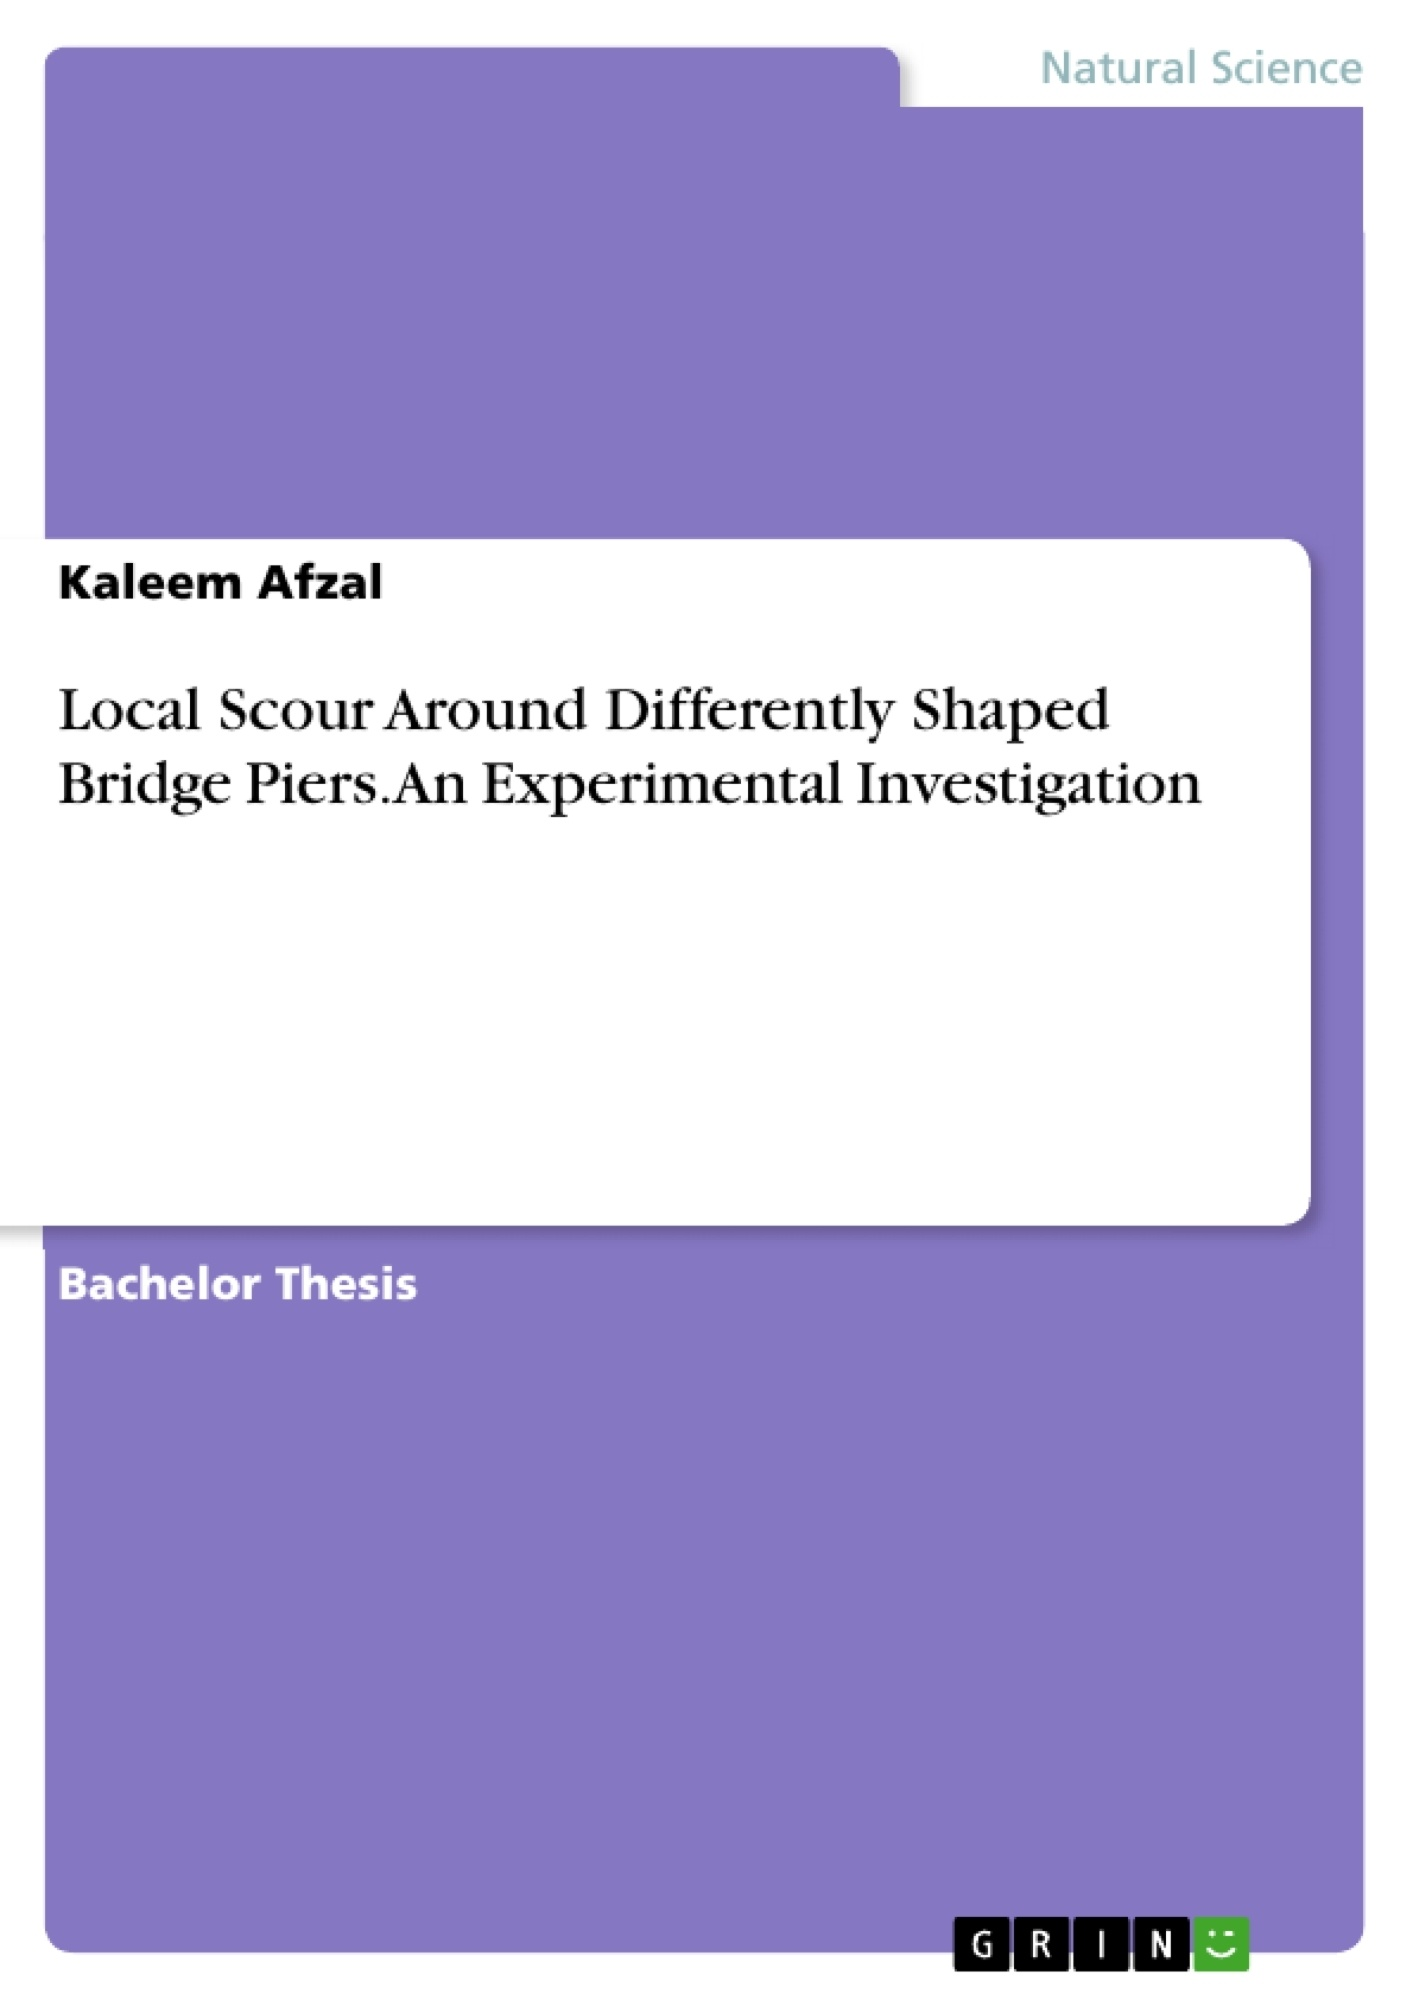 Title: Local Scour Around Differently Shaped Bridge Piers. An Experimental Investigation